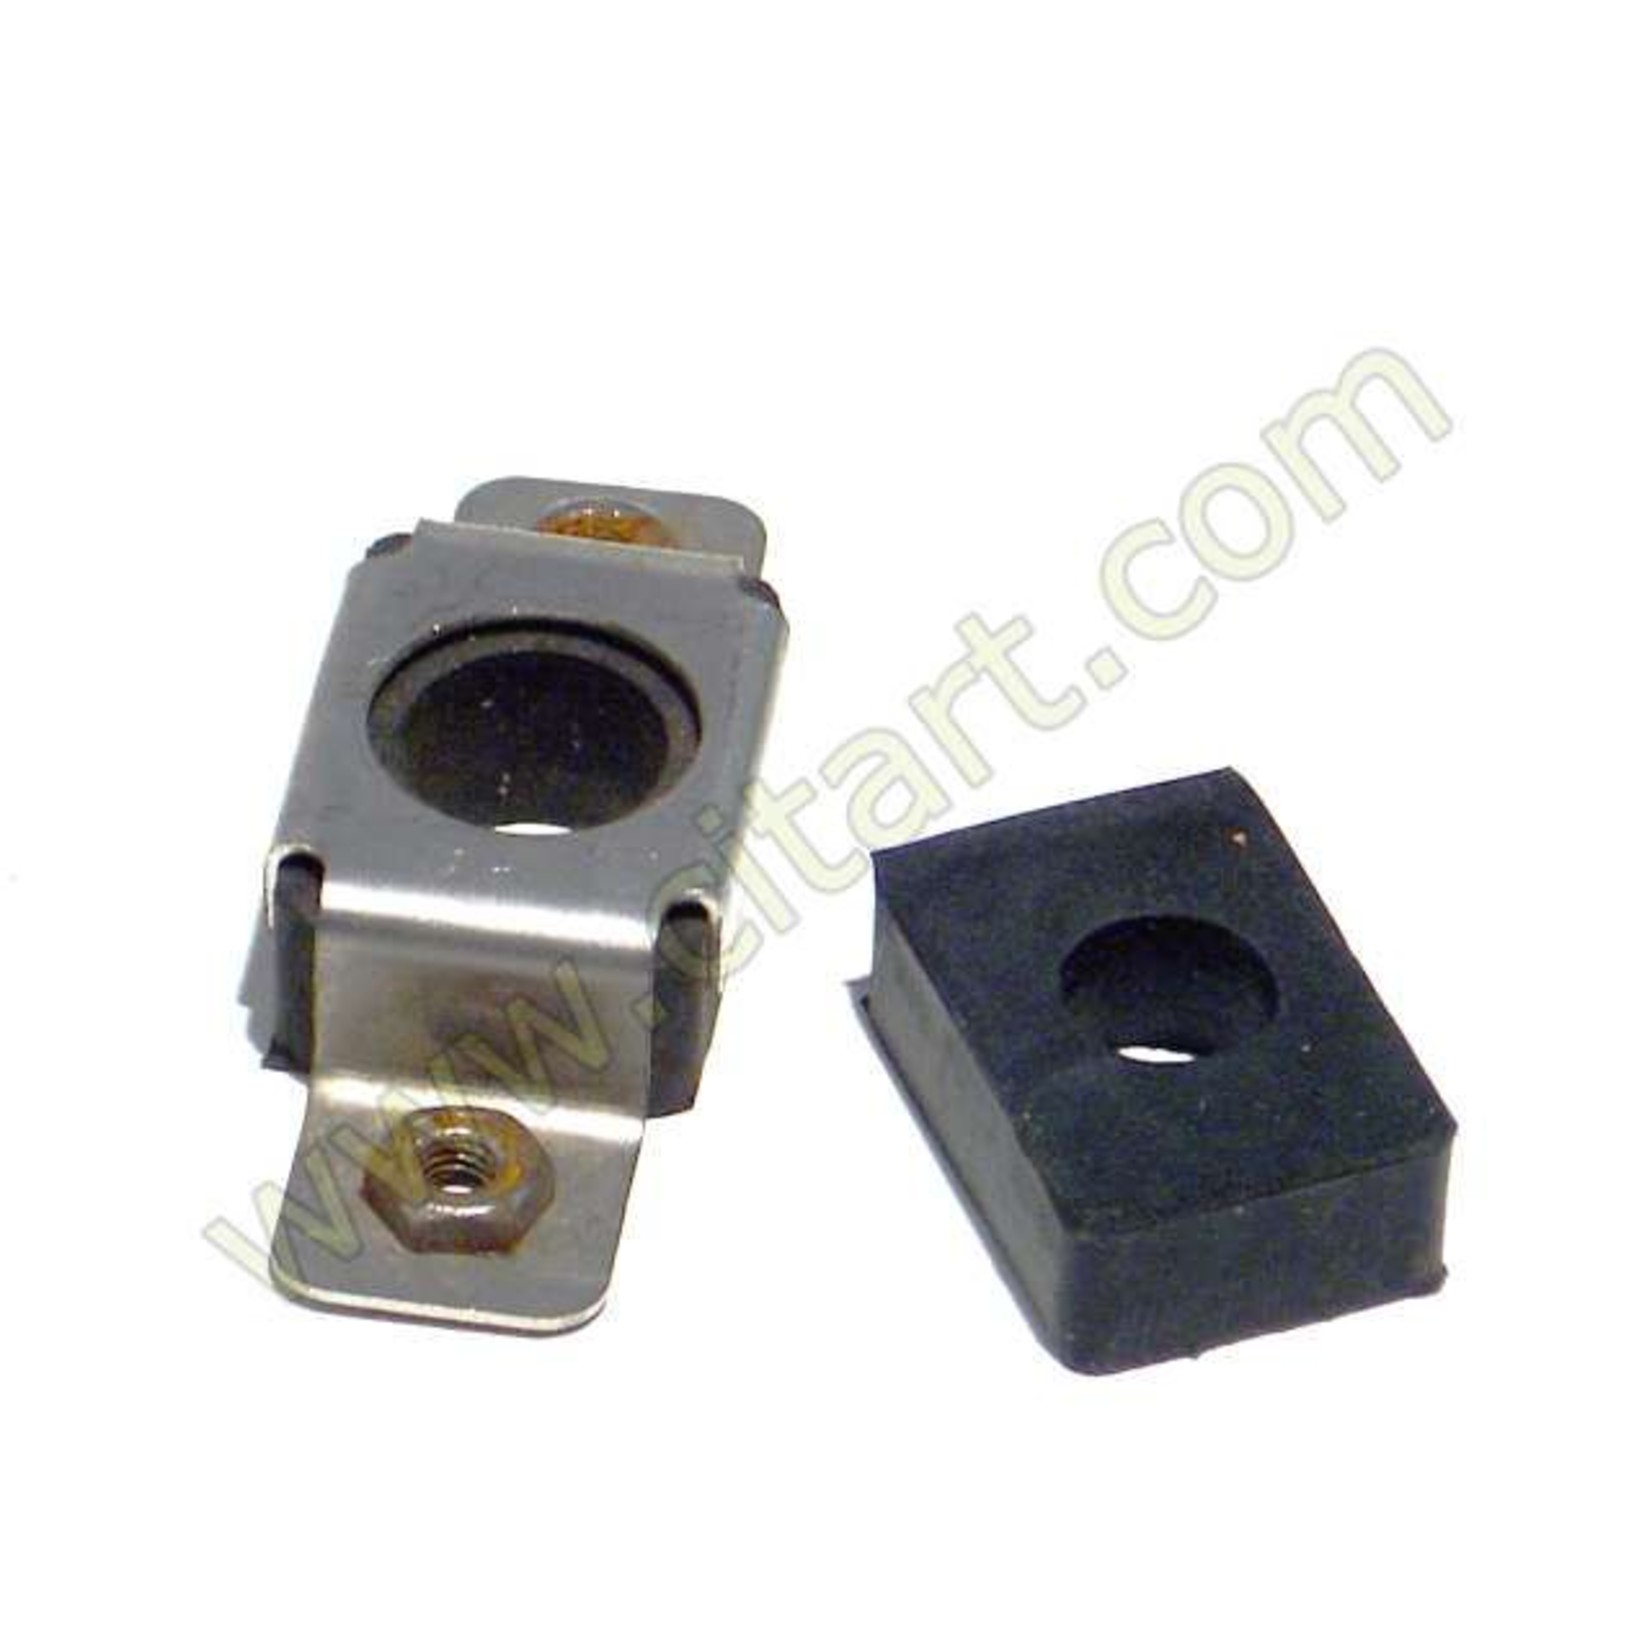 Broche aile arrière carre Inox Nr Org: DX851224A